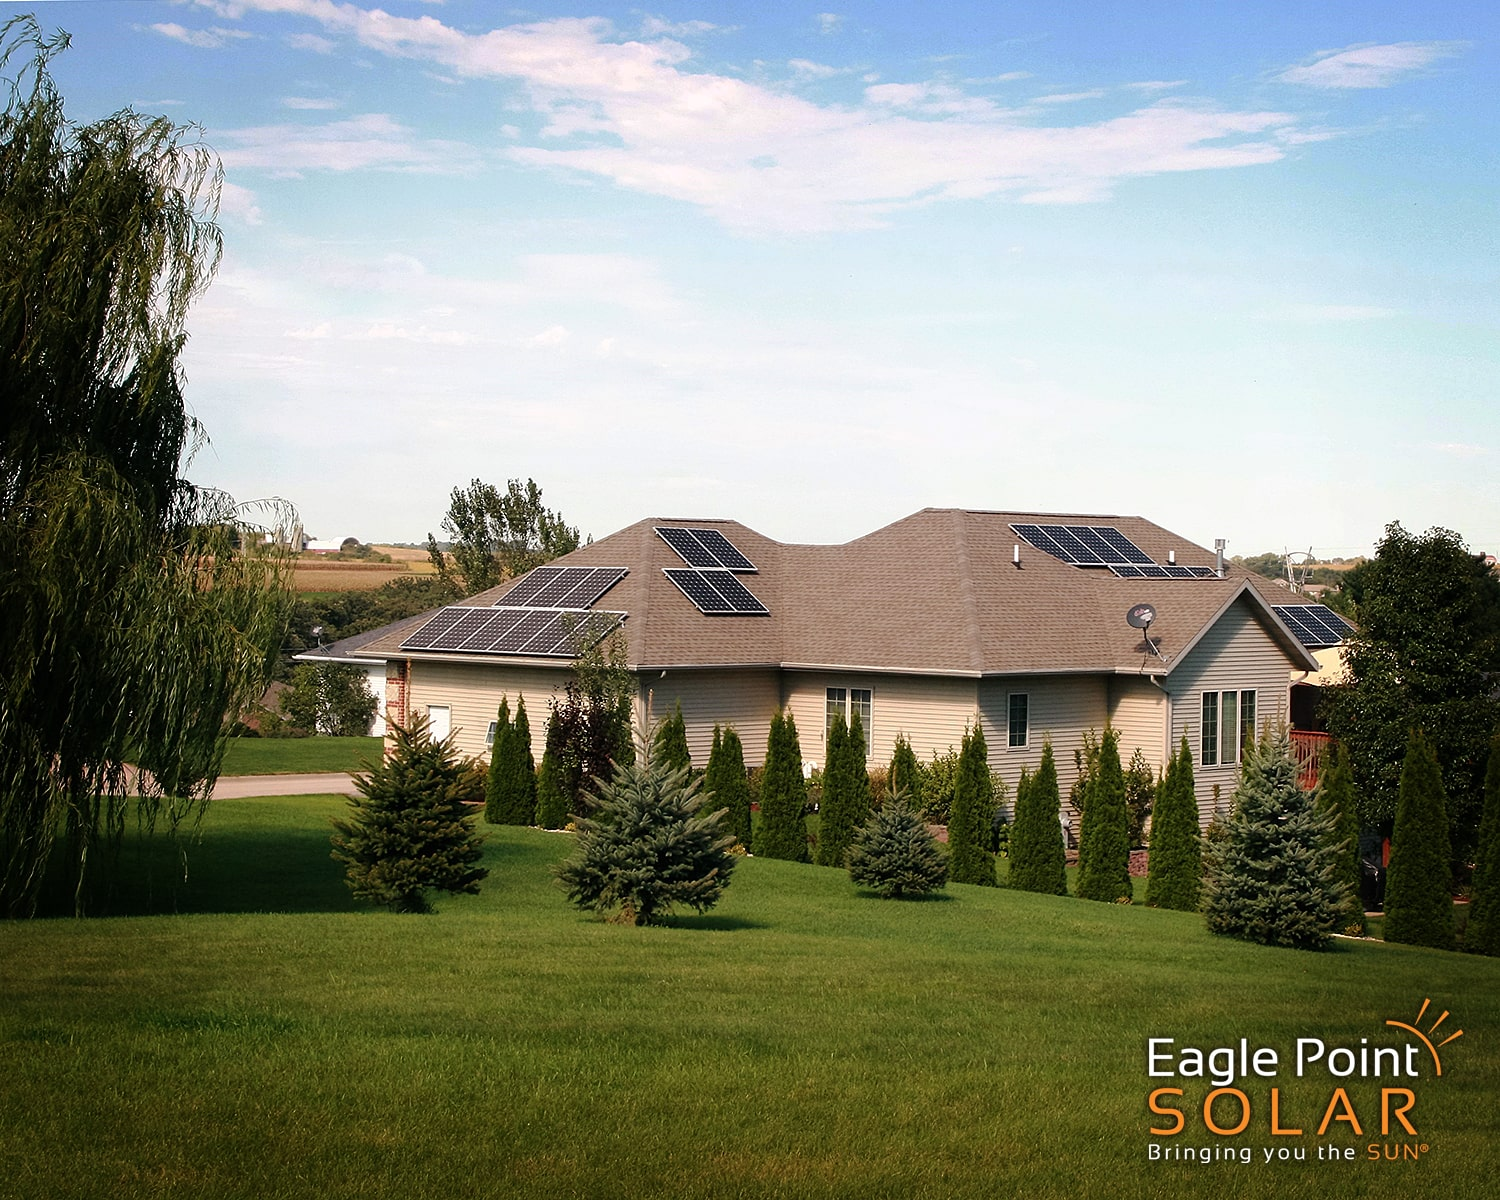 Photo of residential roof mounted solar array Loney